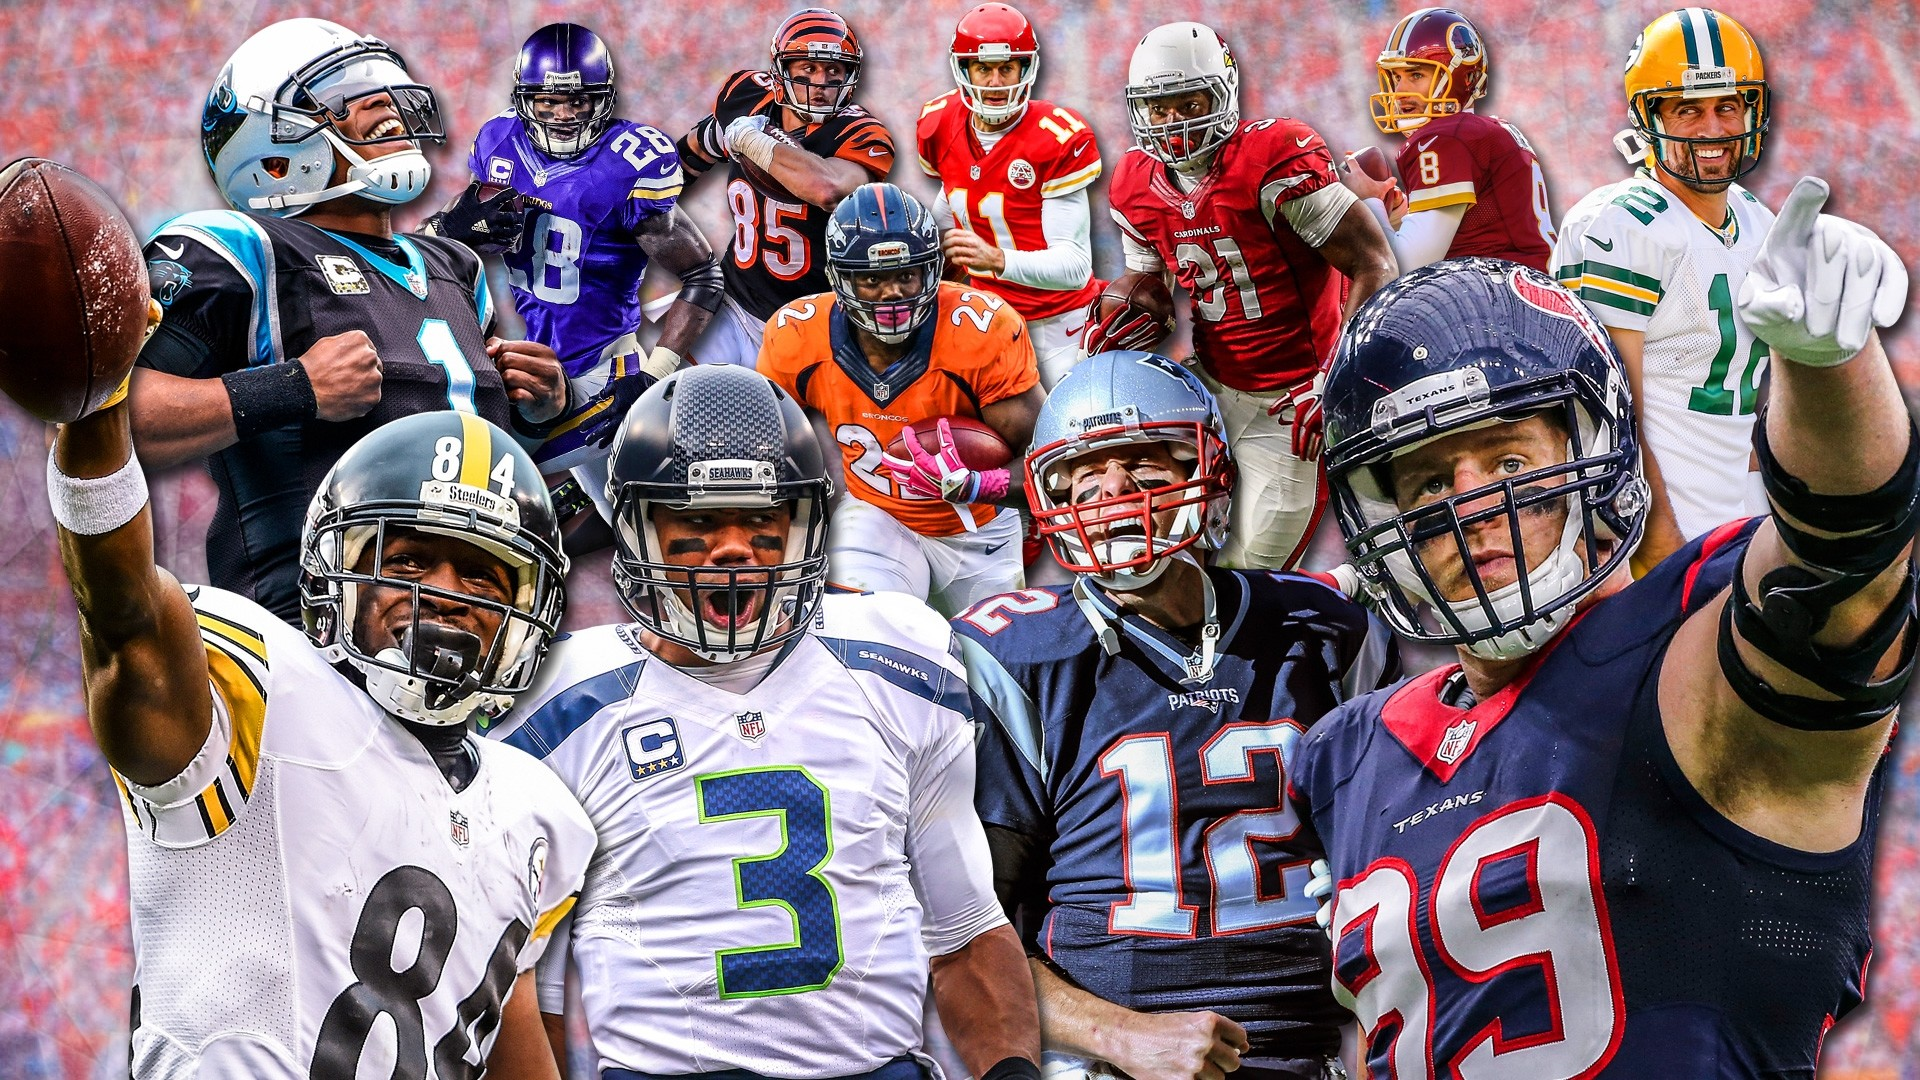 Cool American Football Wallpapers Nfl: Cool NFL Players Wallpapers (66+ Images